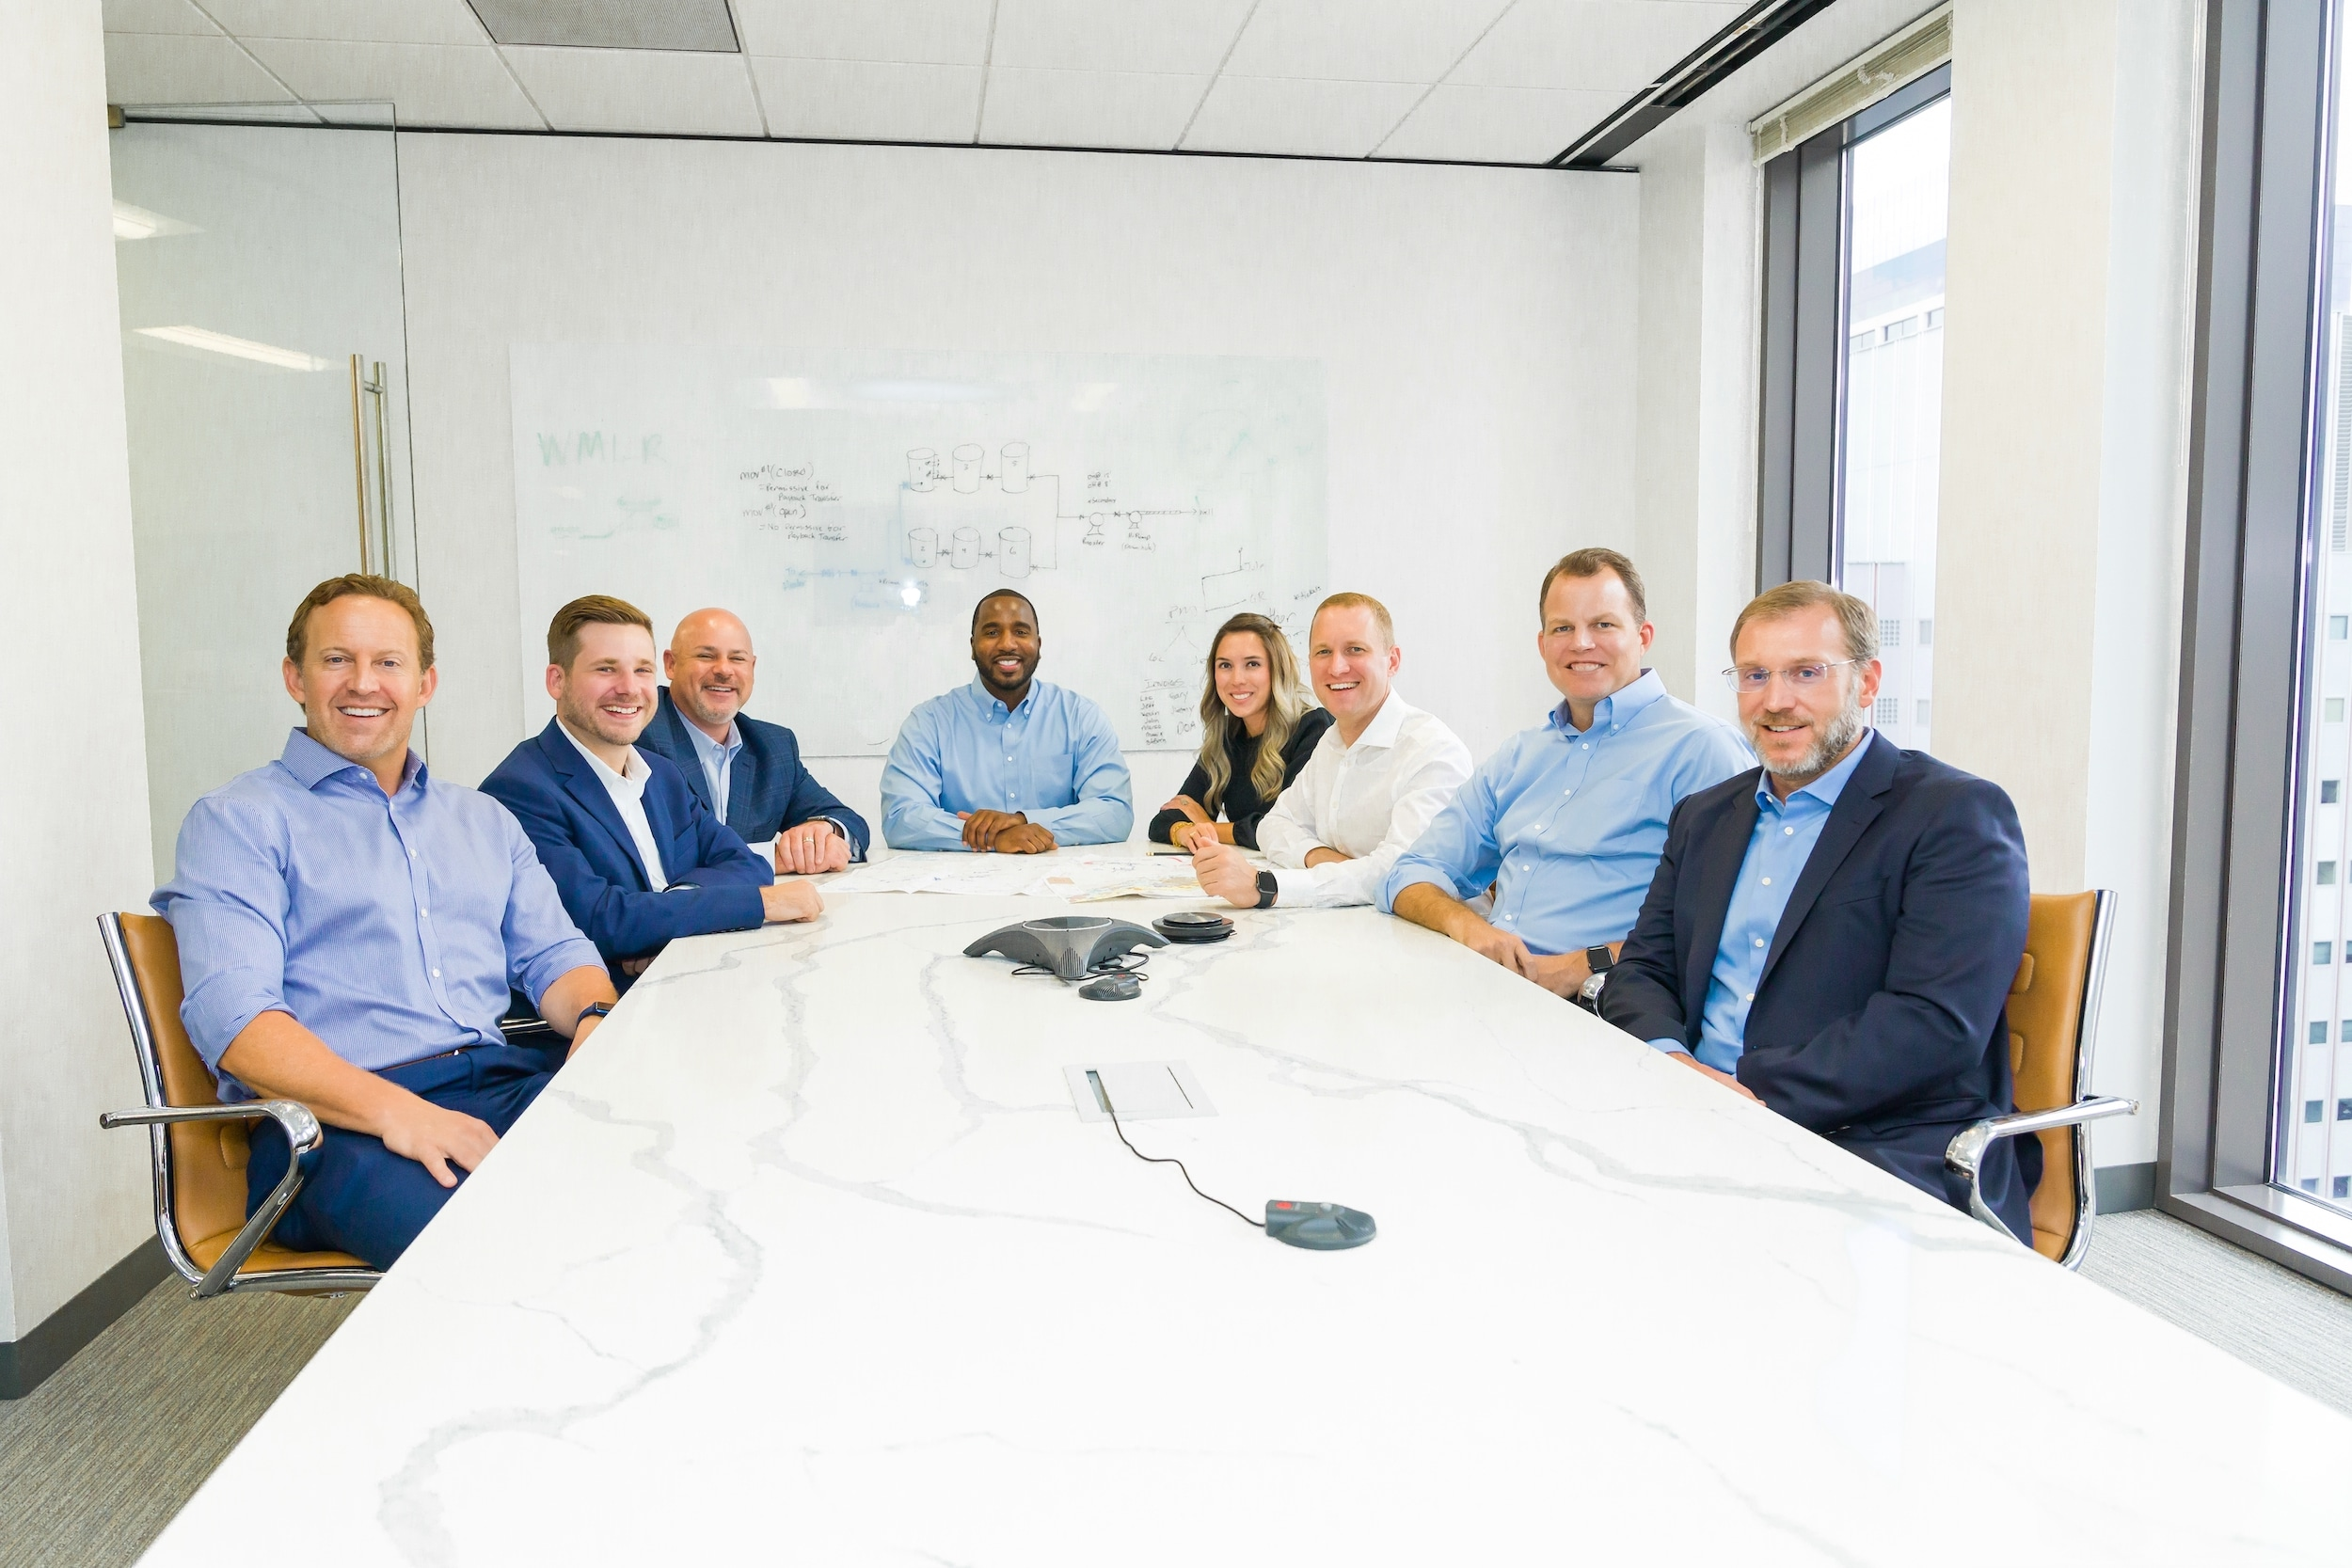 A team of eight employees seated at an office conference table posing for a group photo.